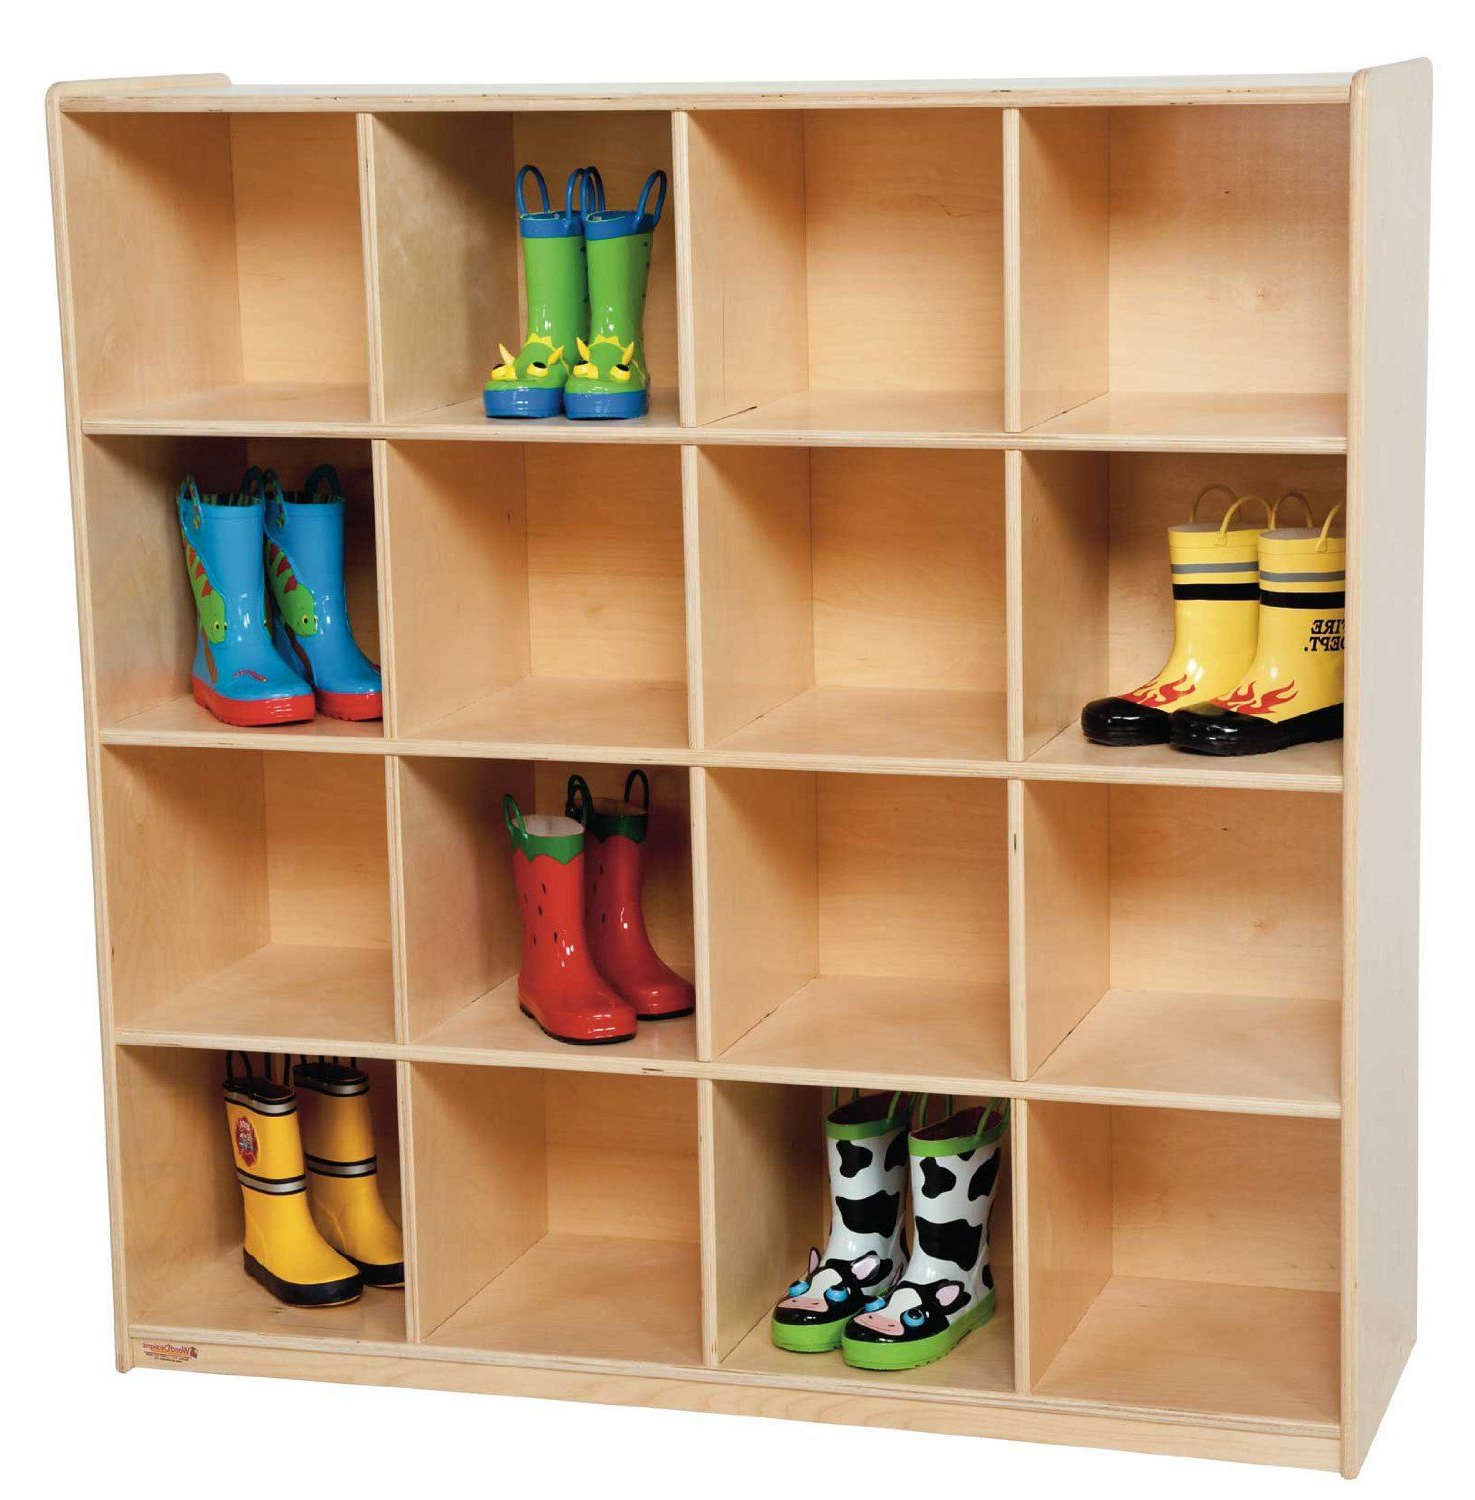 Classroom Cubby Standard Bookcases With Regard To 2020 Amazon: Wood Designs Wd50916 (16) Big Cubby Storage, 49 (Gallery 20 of 20)